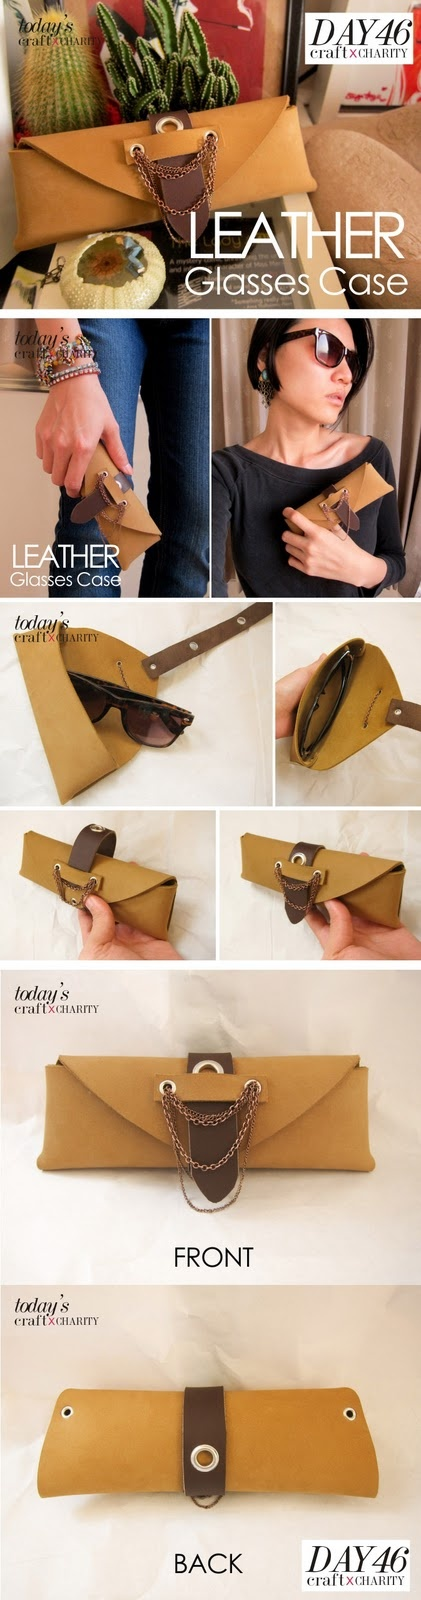 Day 46 - Handmade Leather Glasses Case